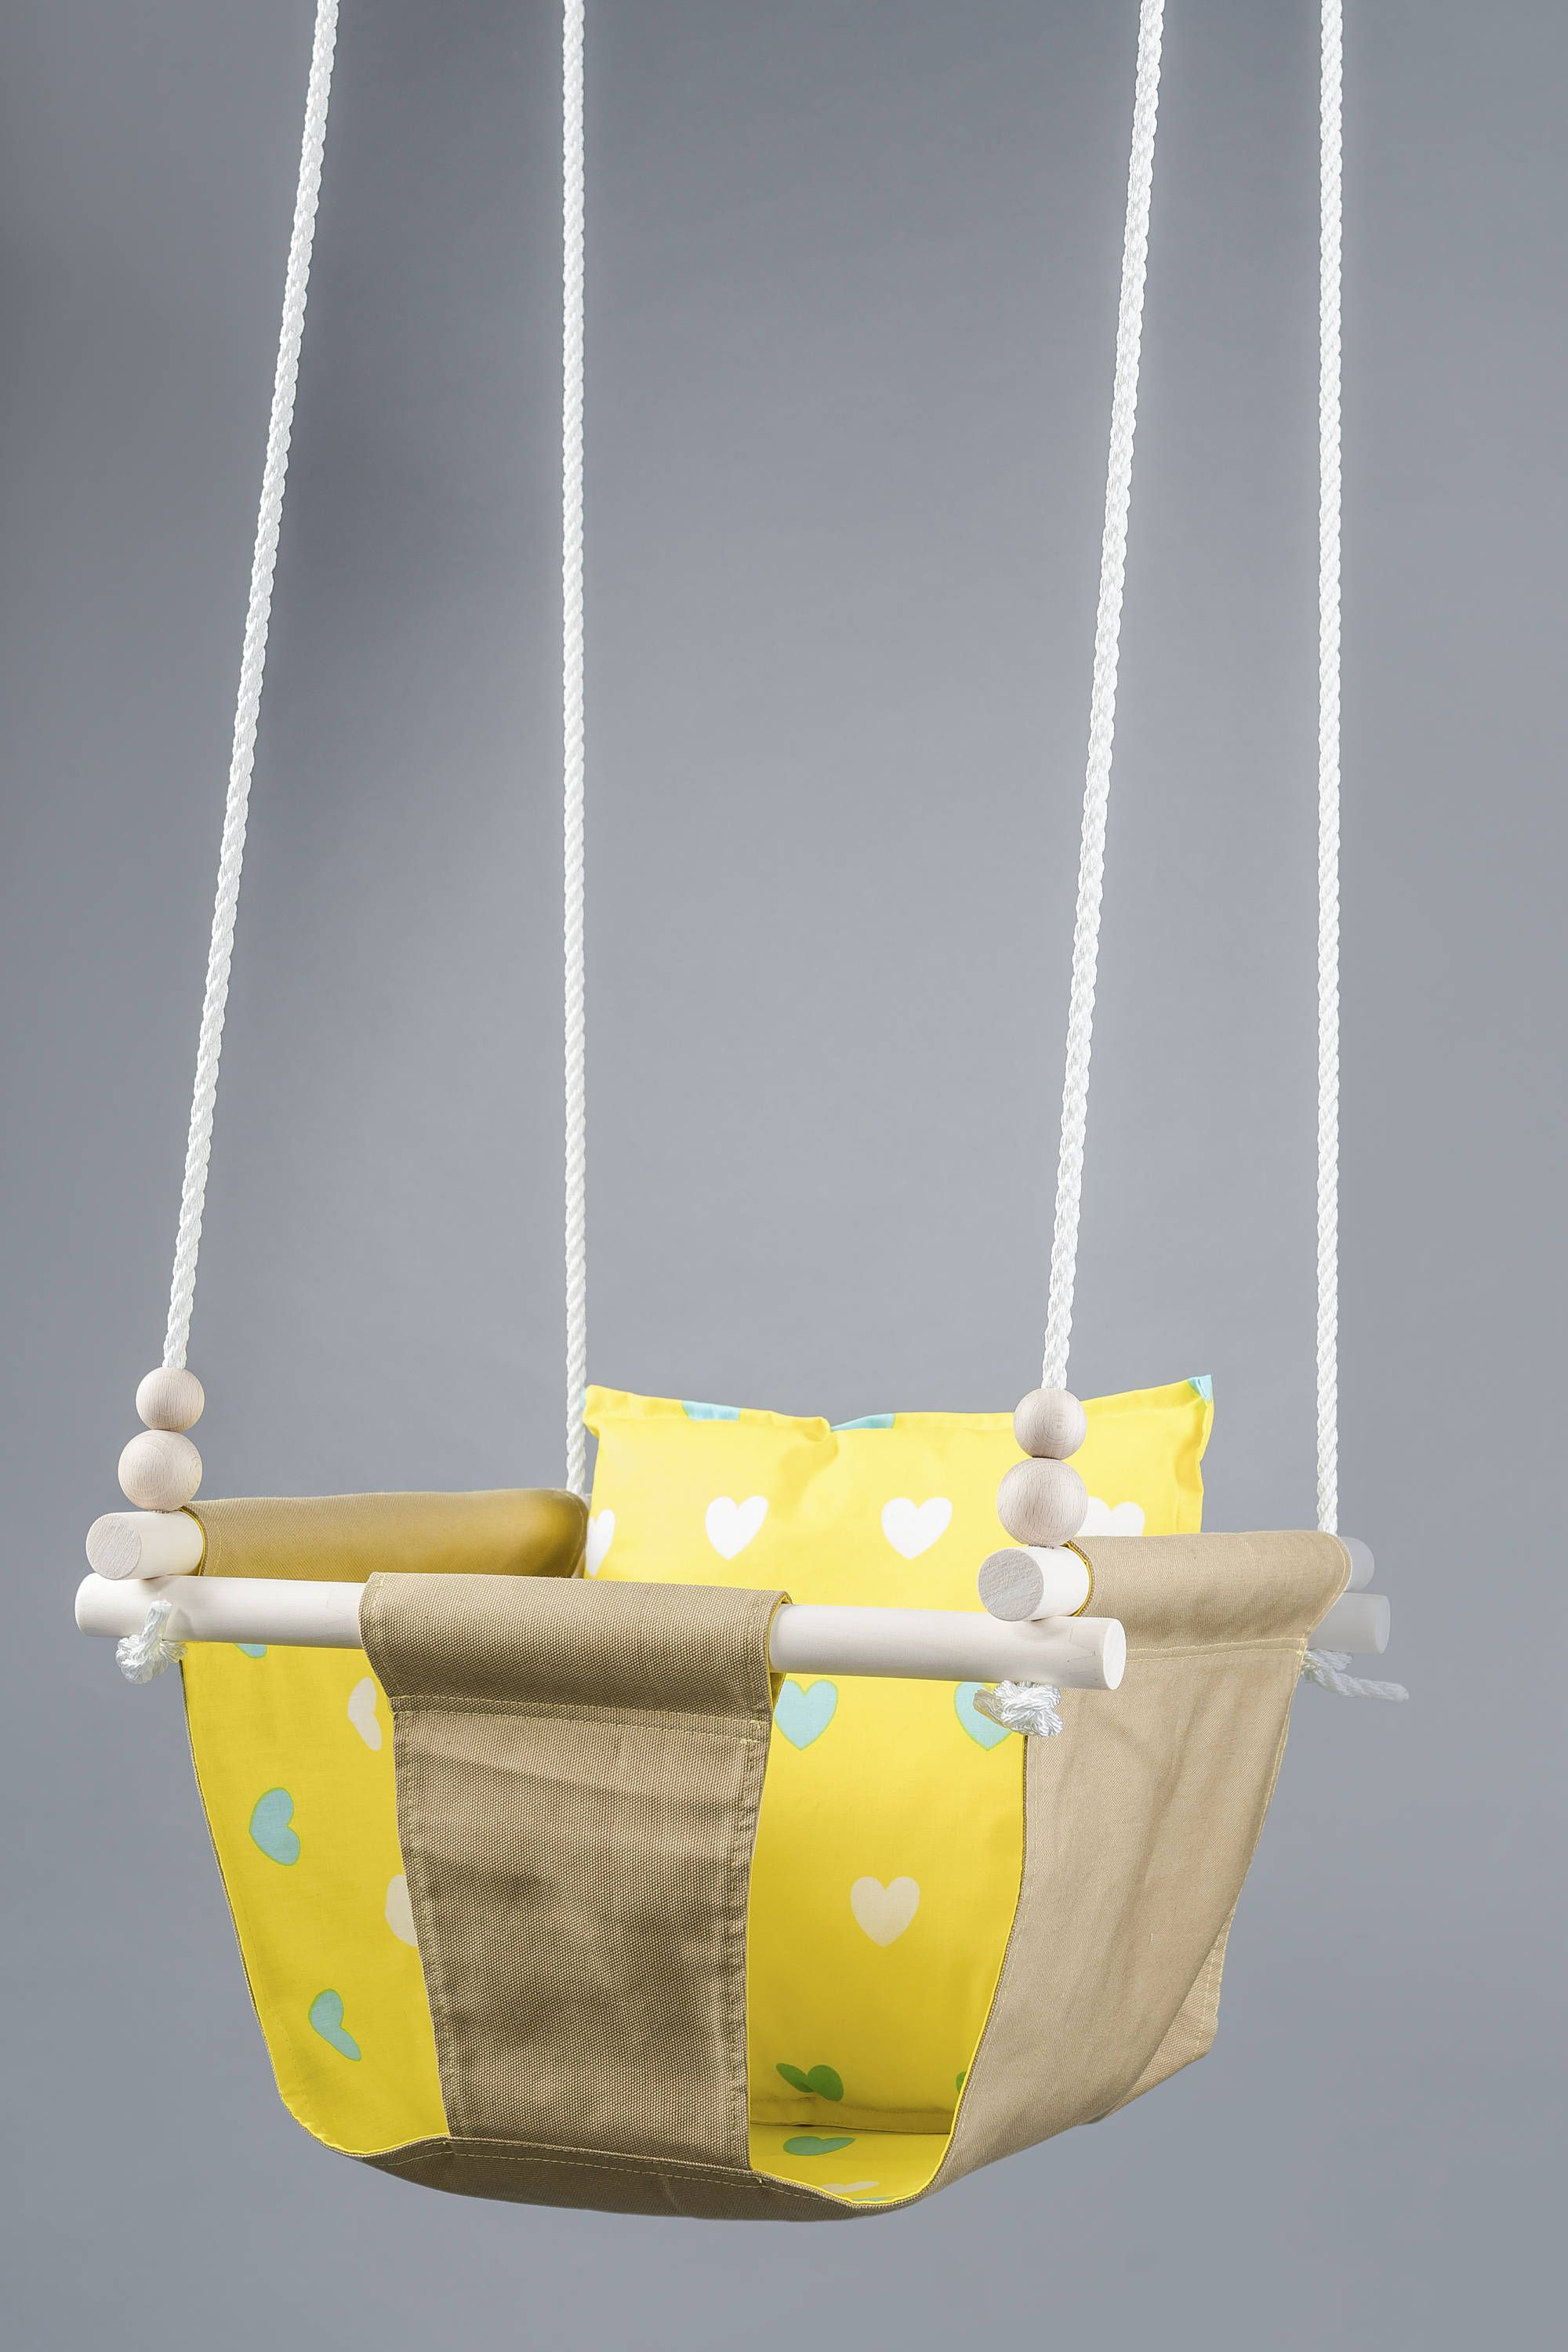 Home swing for baby baby hammock swing baby swing chair diy